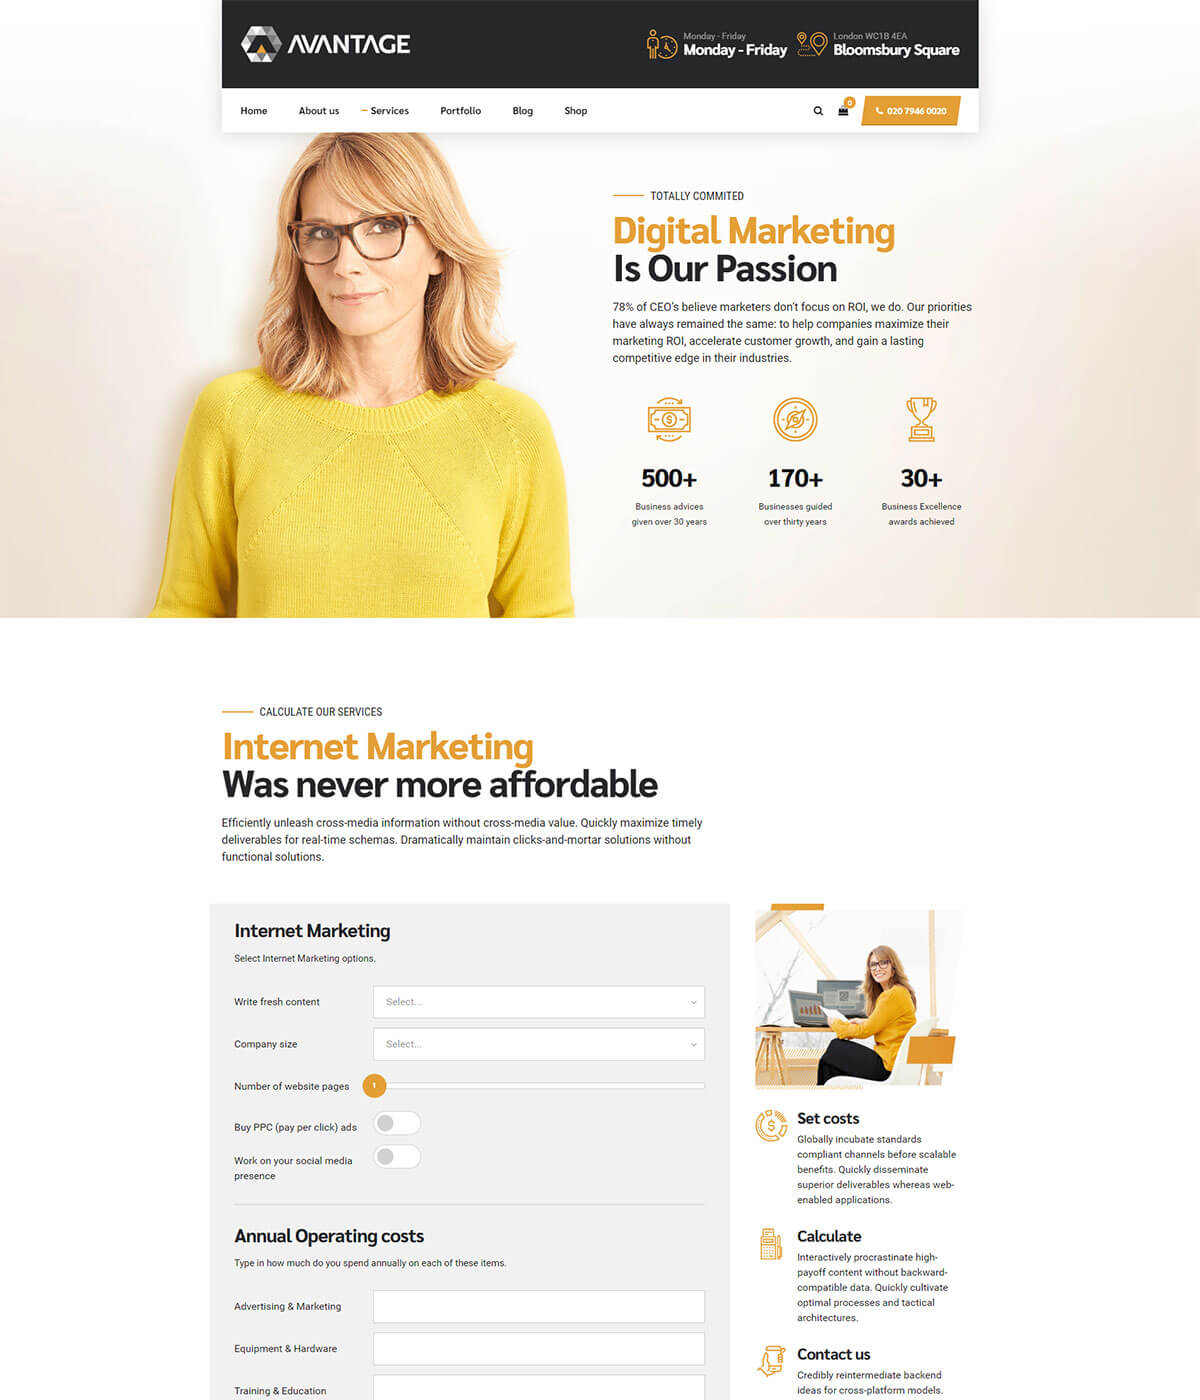 http://avantage.bold-themes.com/wp-content/uploads/2019/05/marketing-10-cc.jpg